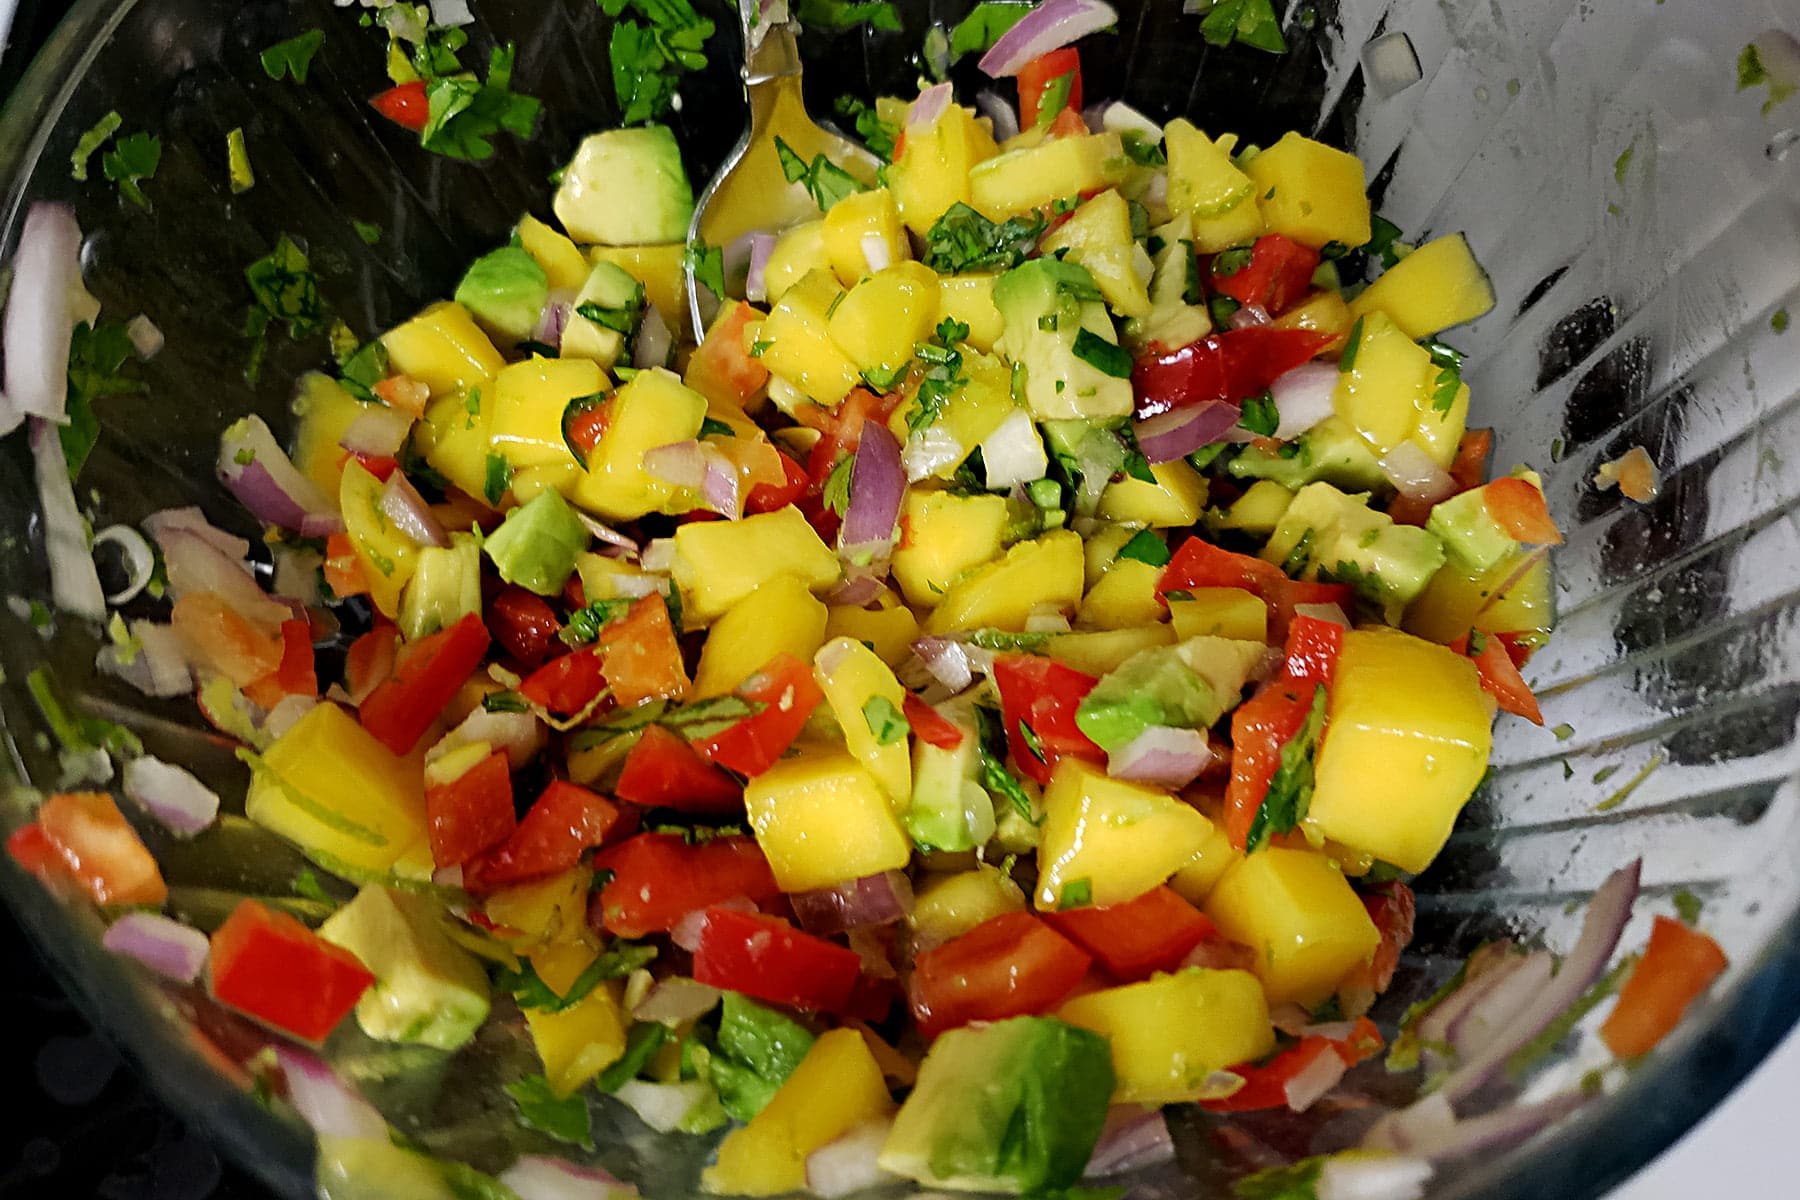 A close up view of a glass bowl of mango salsa. Mango, red pepper, avocado, red onion, and chopped cilantro is shown.